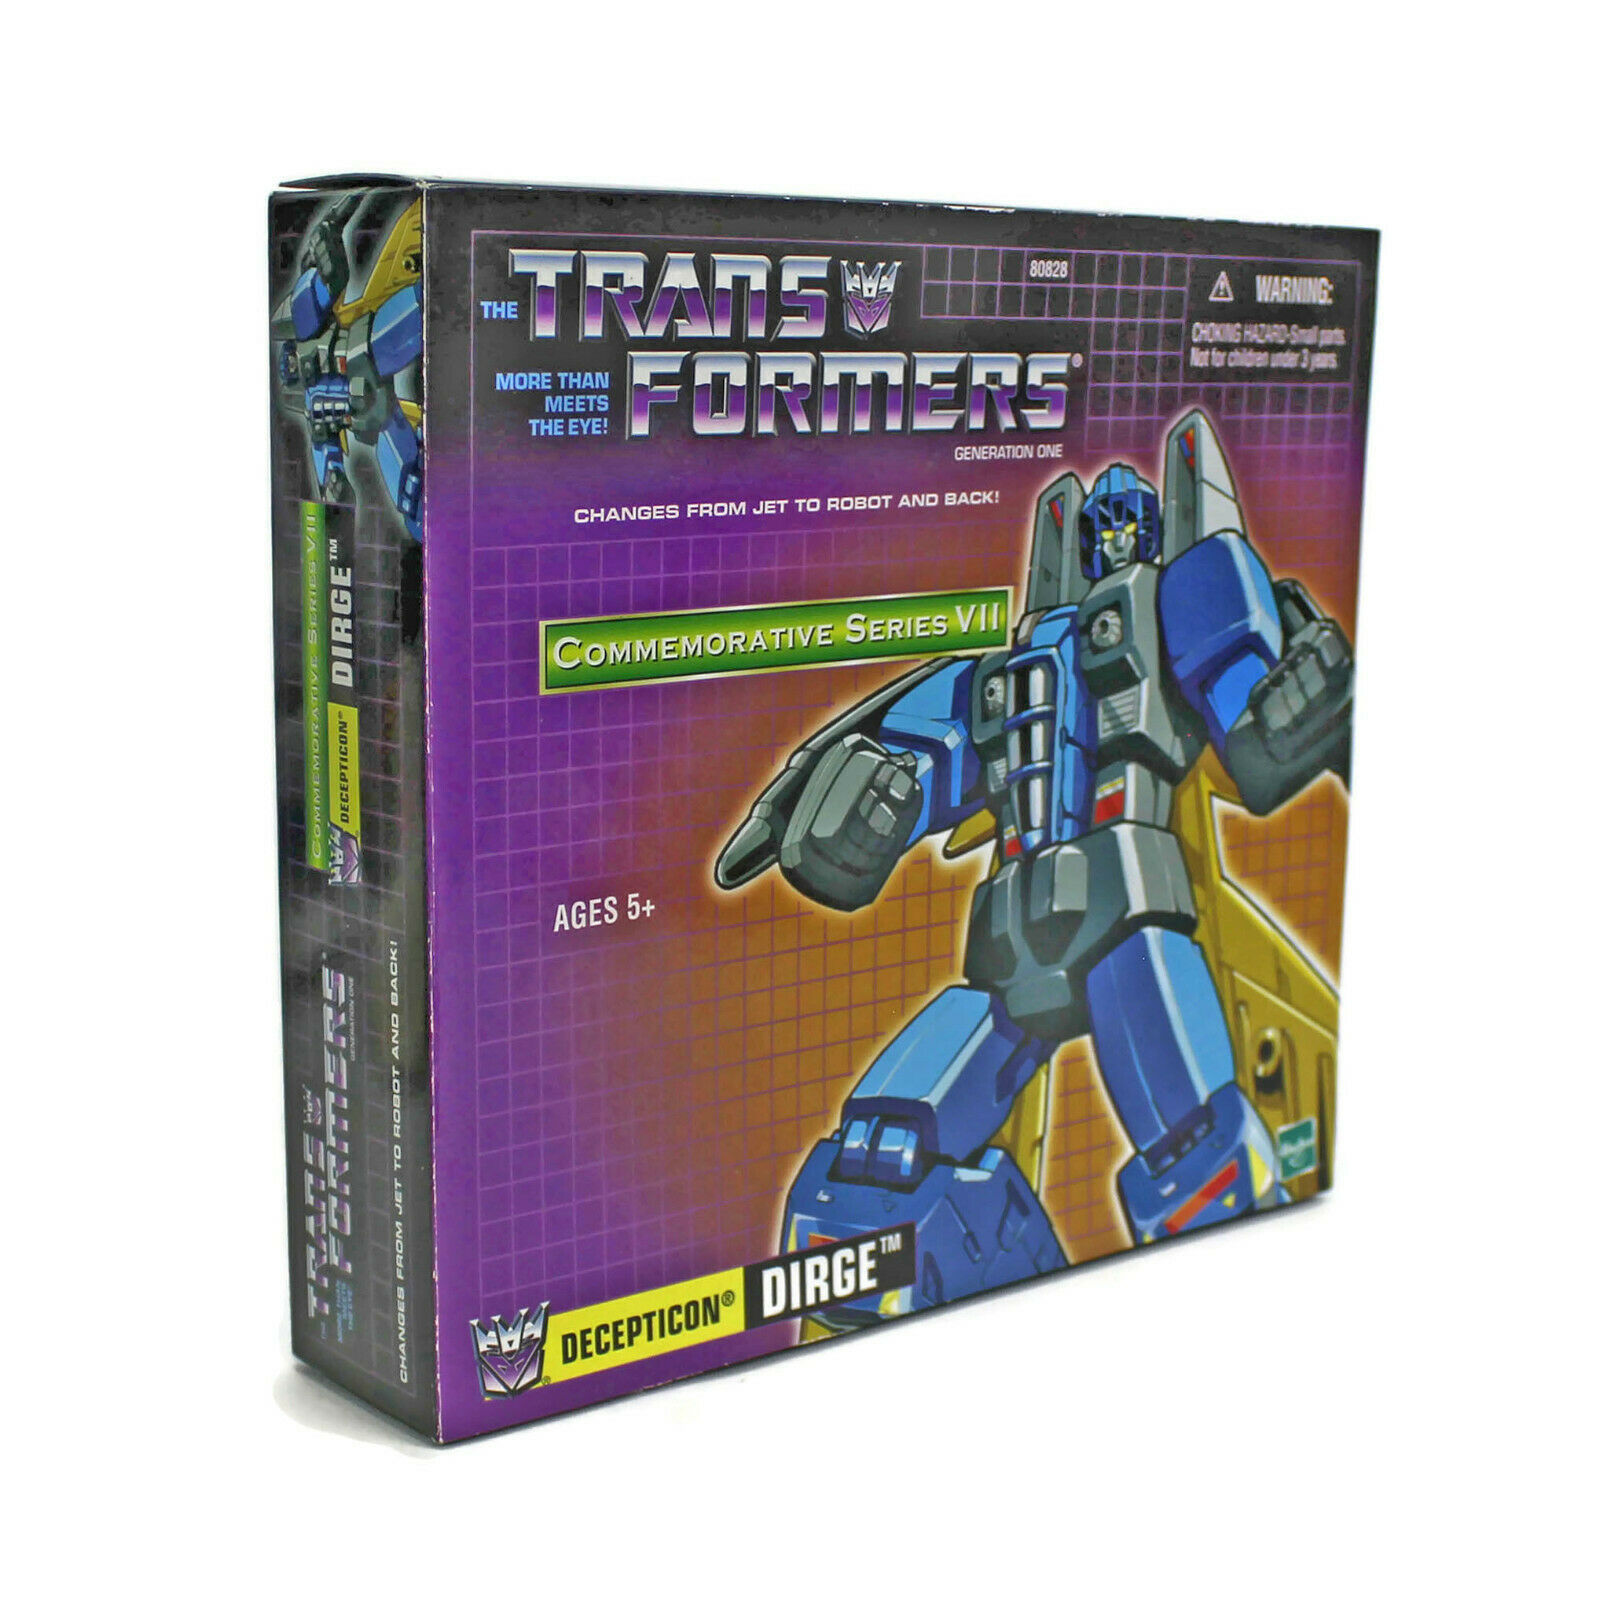 Transformers G1 | DIRGE | Commemorative Series 7 VII | DECEPTICON | Hasbro 2003